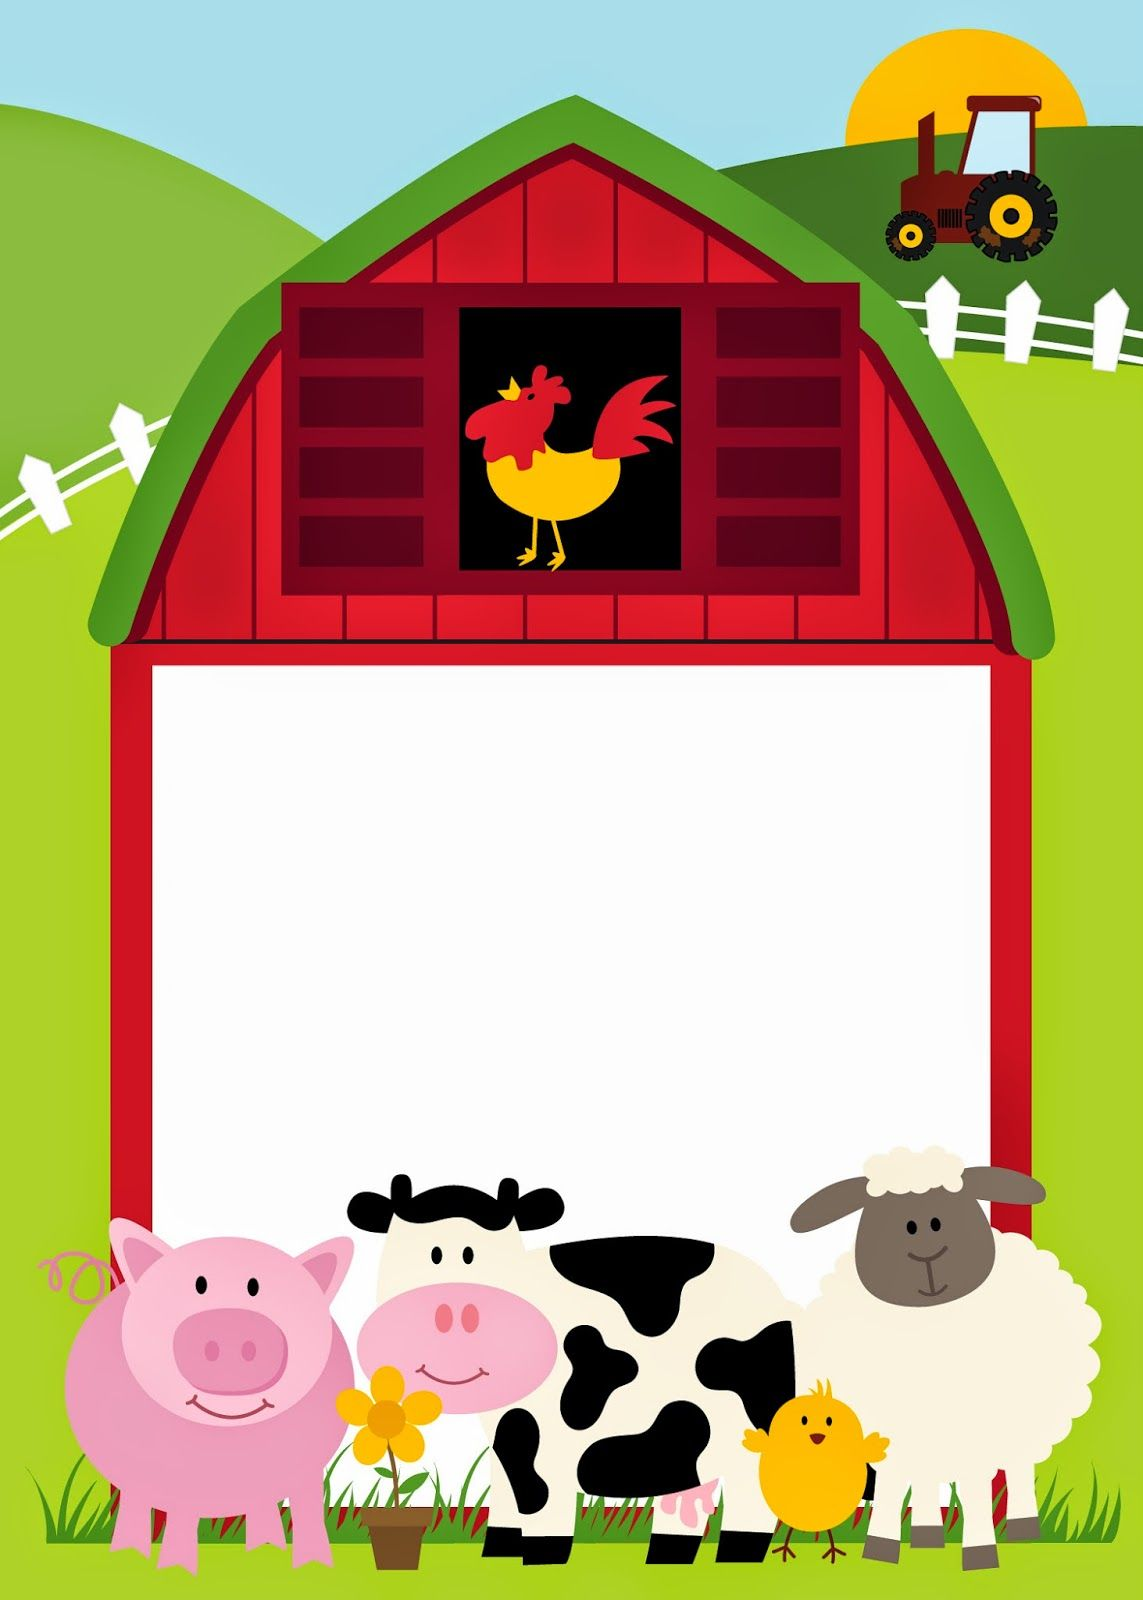 Red Barn Door Clip Art how to draw a barn house and fence step 5 | active faith